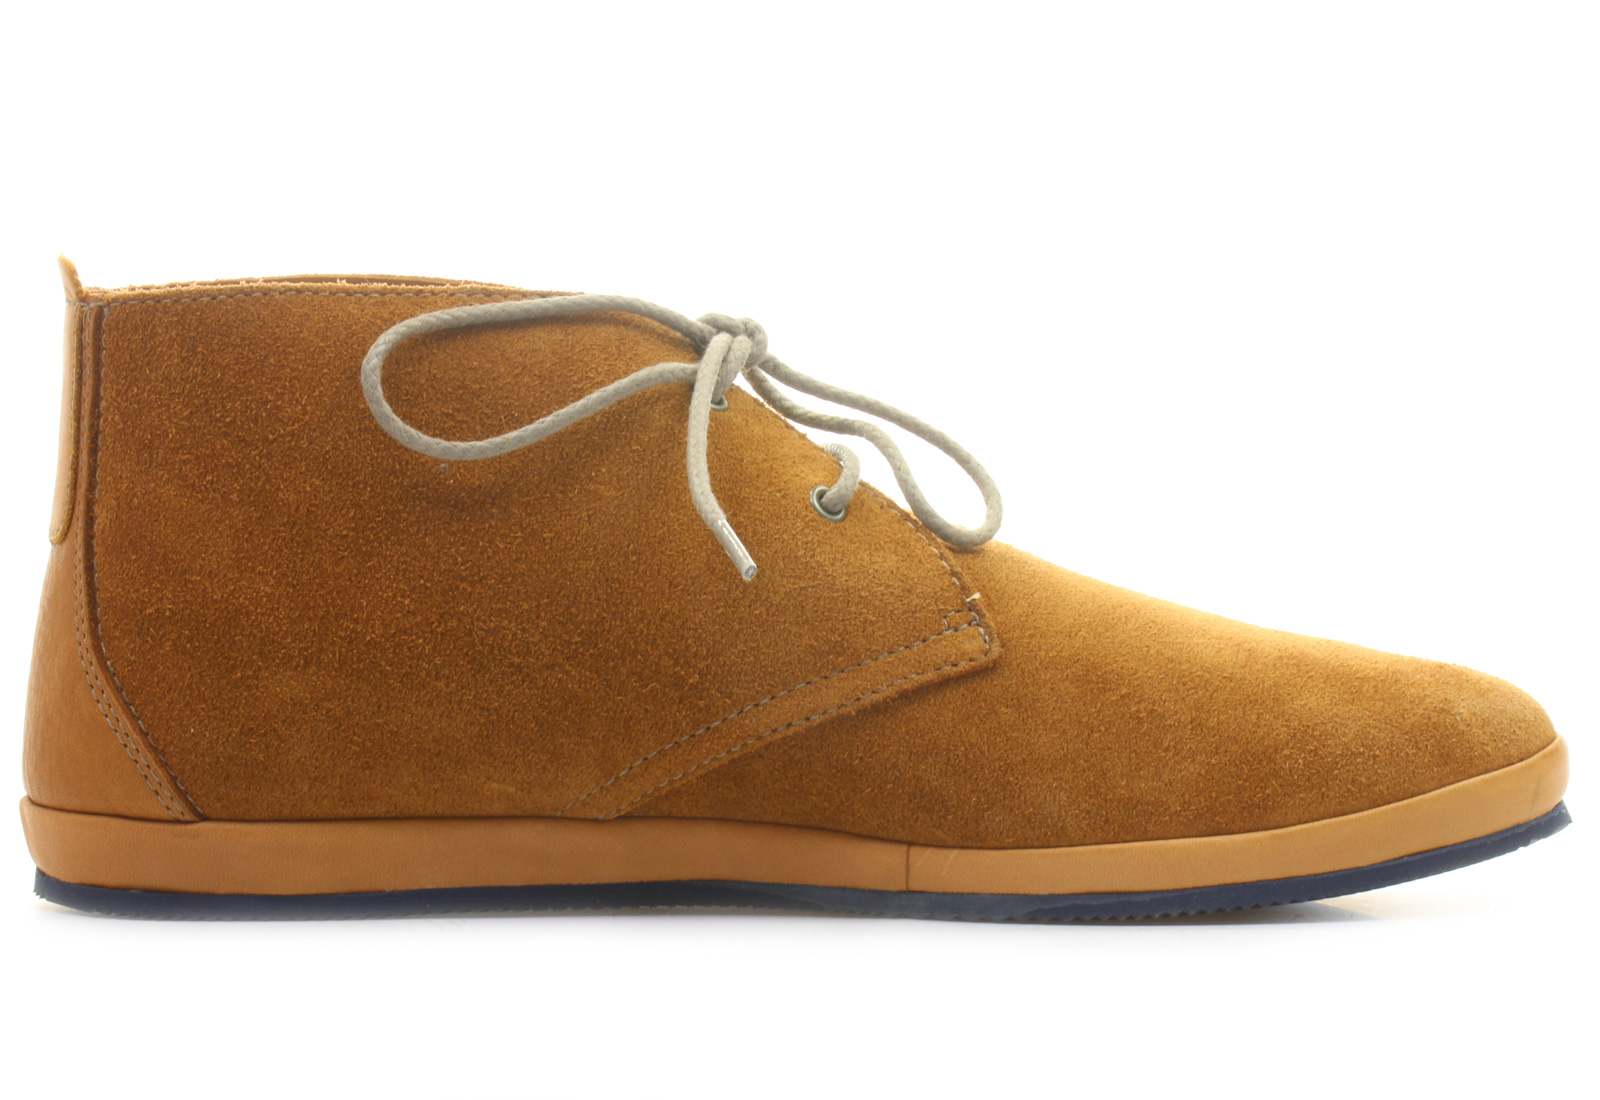 Timberland Shoes Woodcliff Chukka 5409A rus Online shop for sneakers, shoes and boots